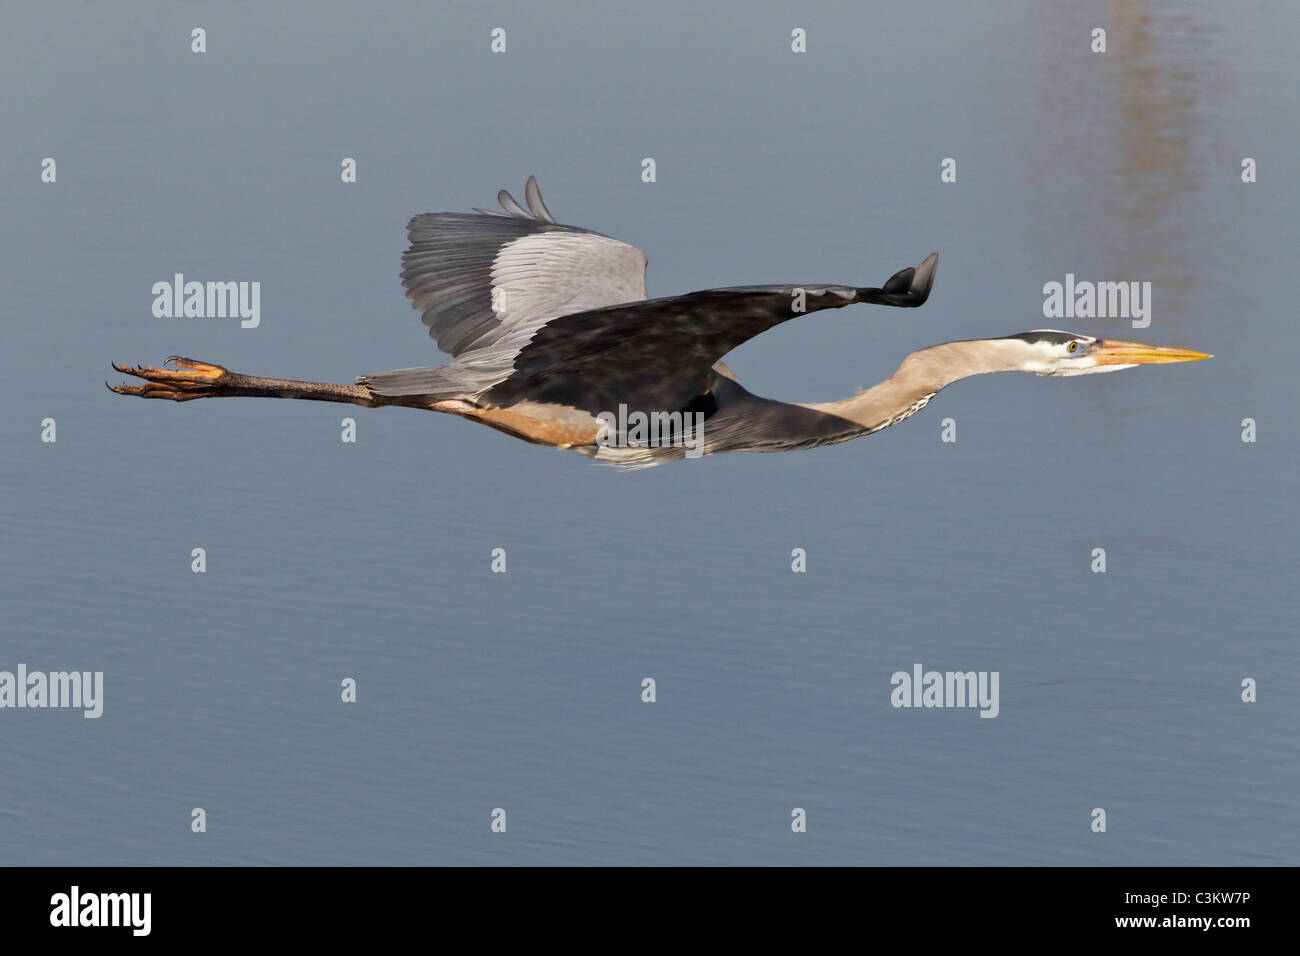 An adult Great Blue Heron flying low across a lake - Stock Image